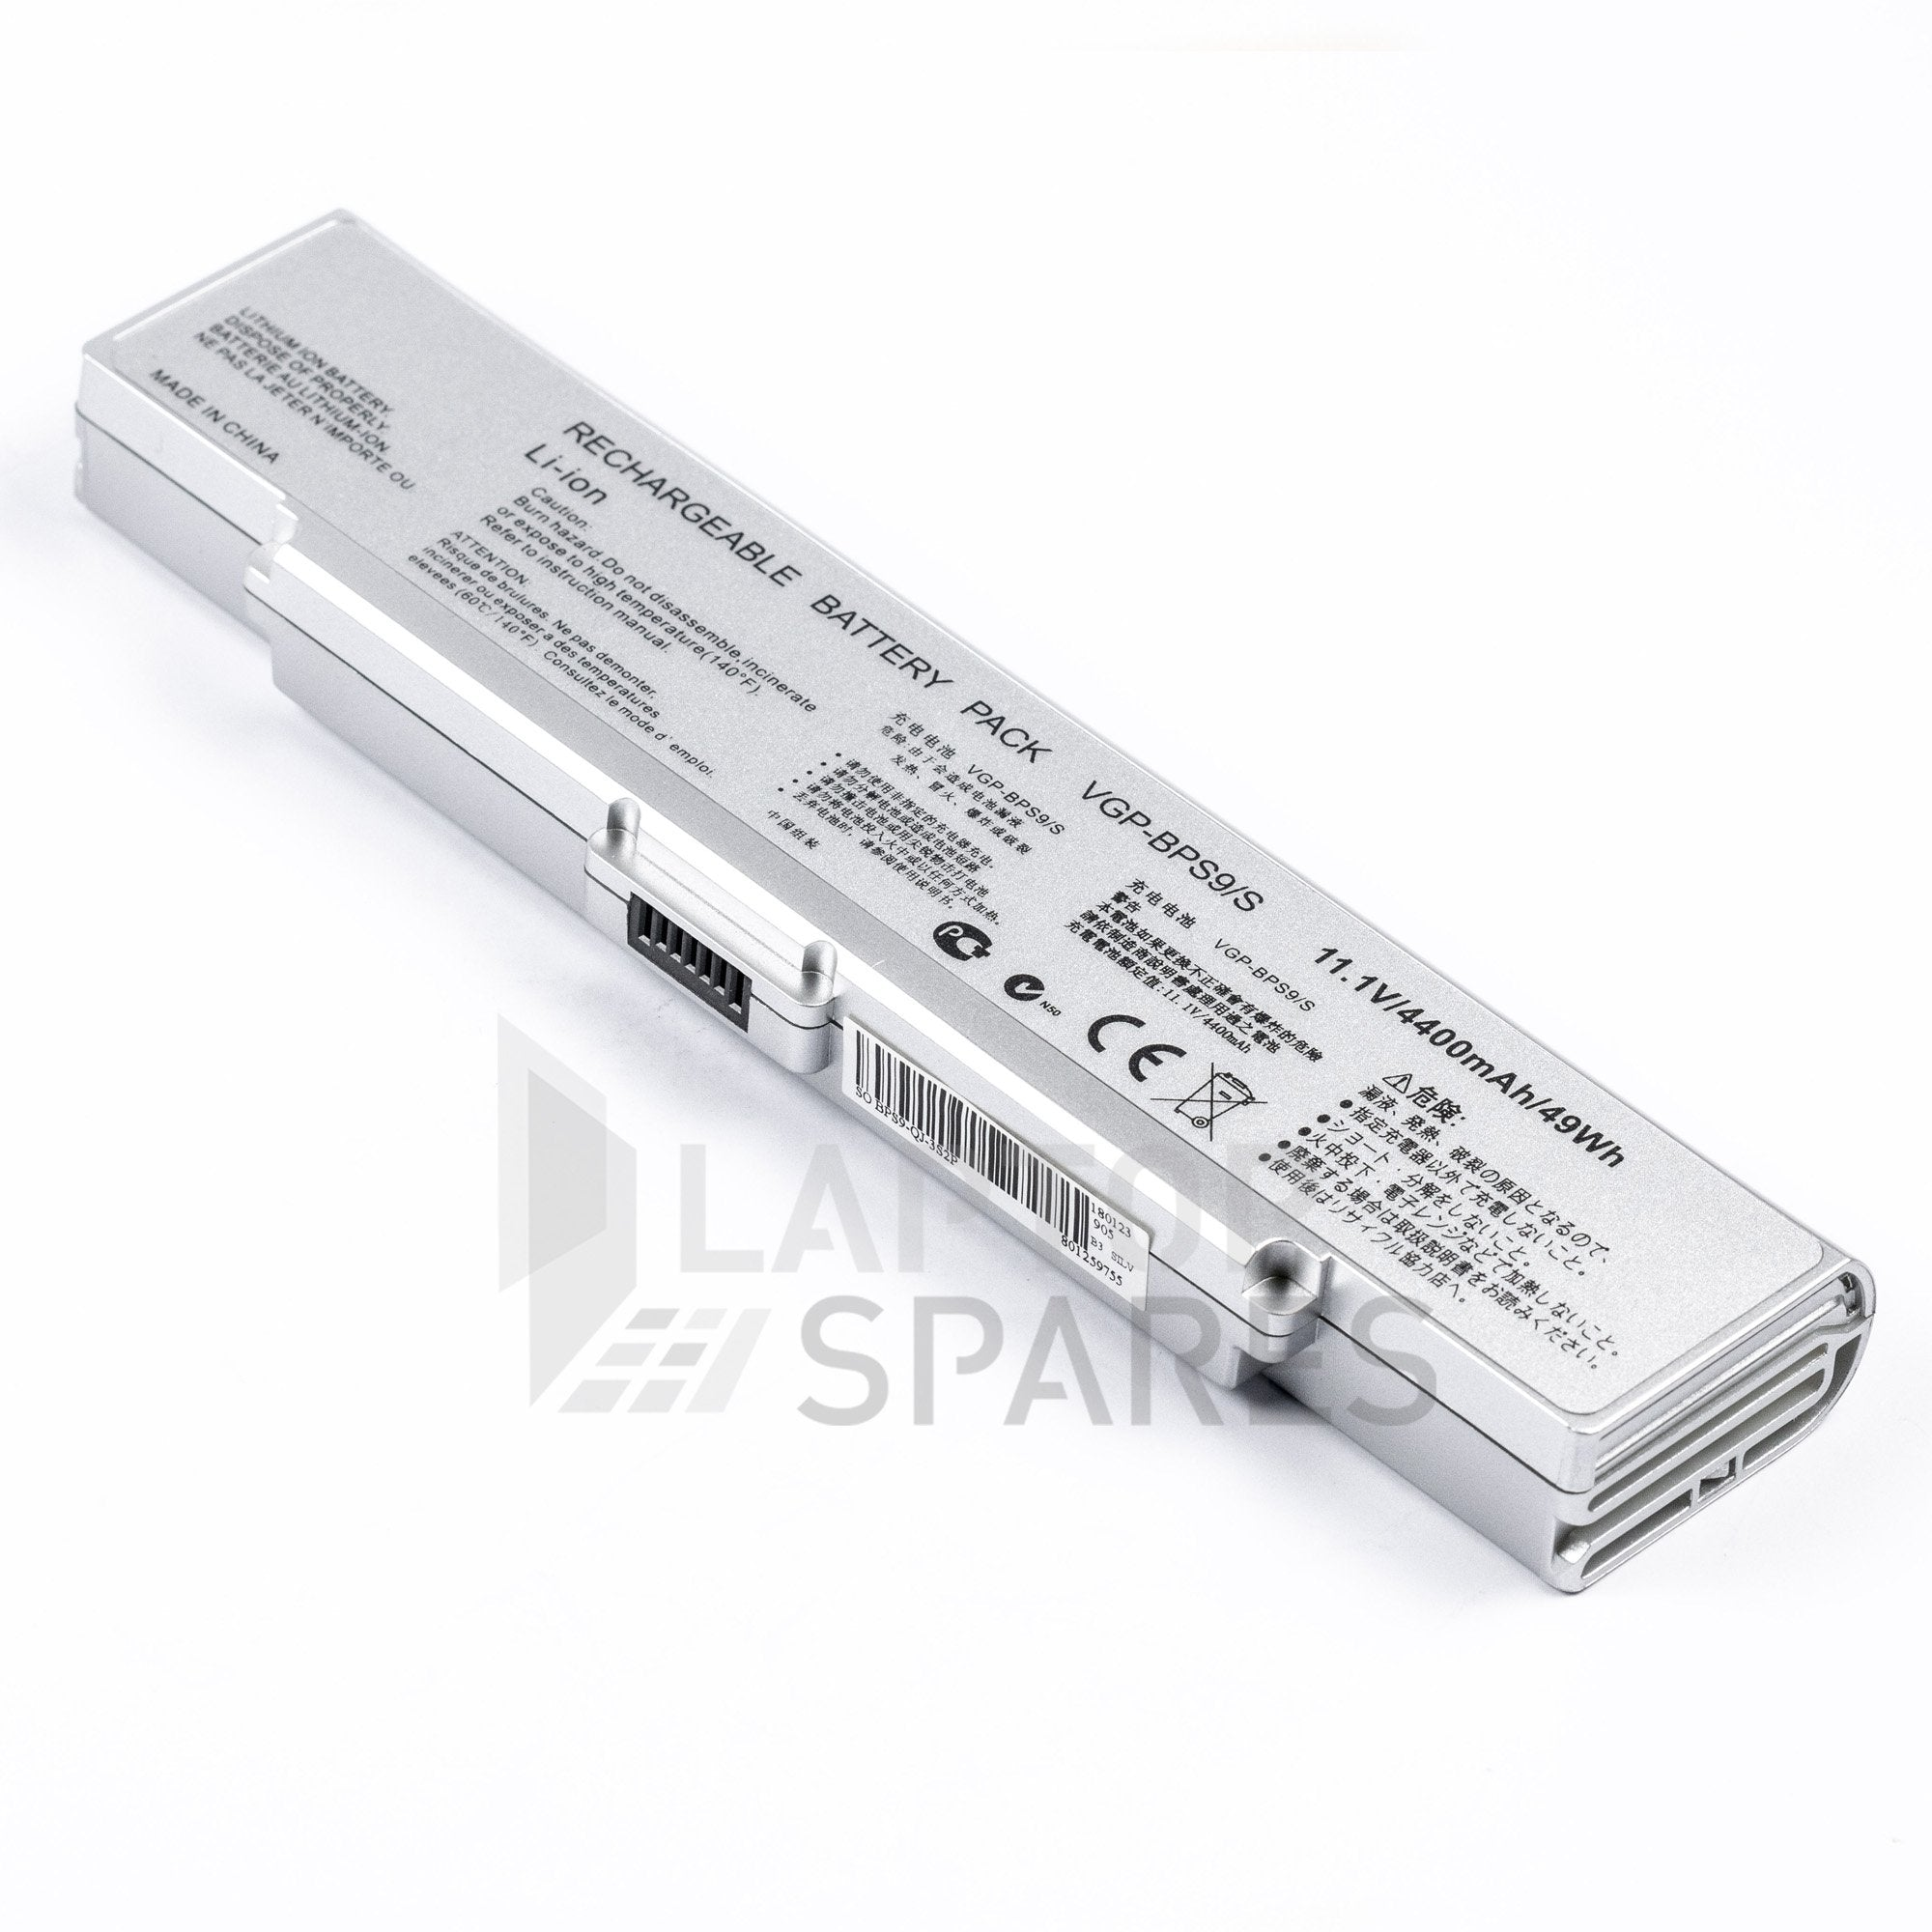 Sony VAIO VGN-SZ562N 4400mAh 6 Cell Battery